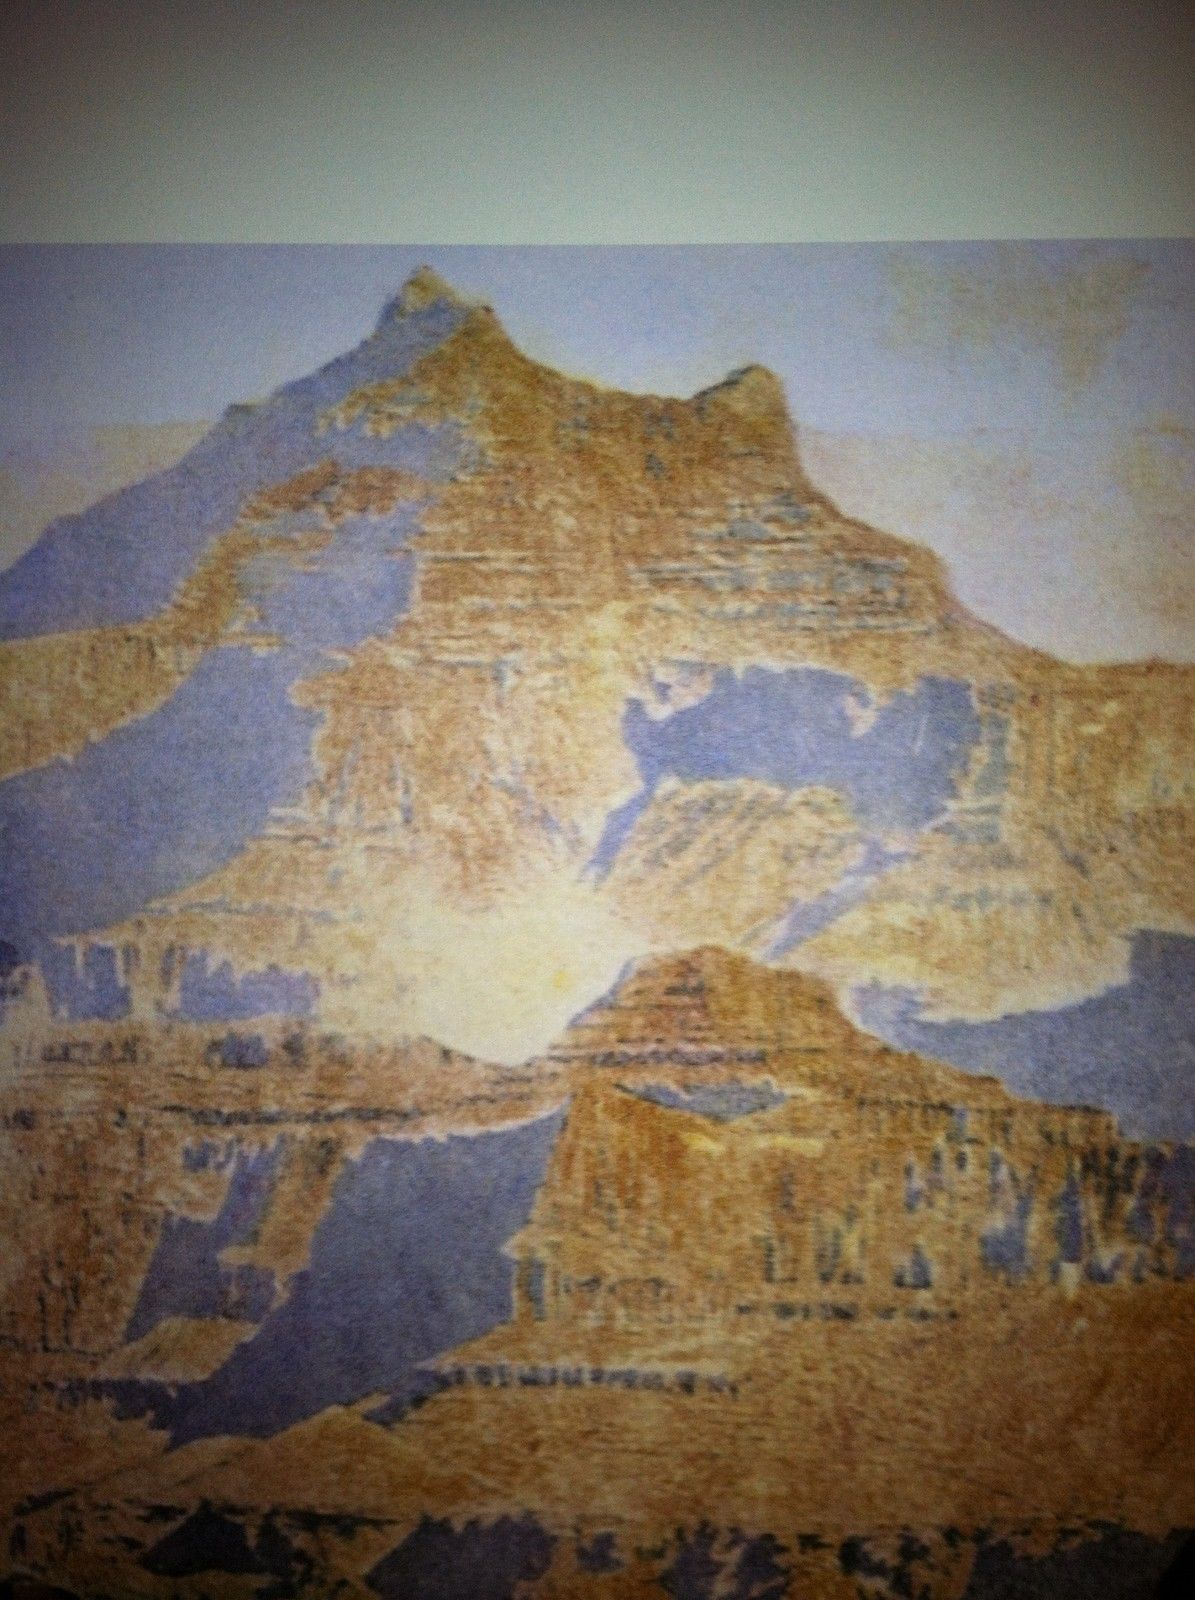 The Grand Canyon 22x30 Hand Numbered Edition Maxfield Parrish Art Deco Print